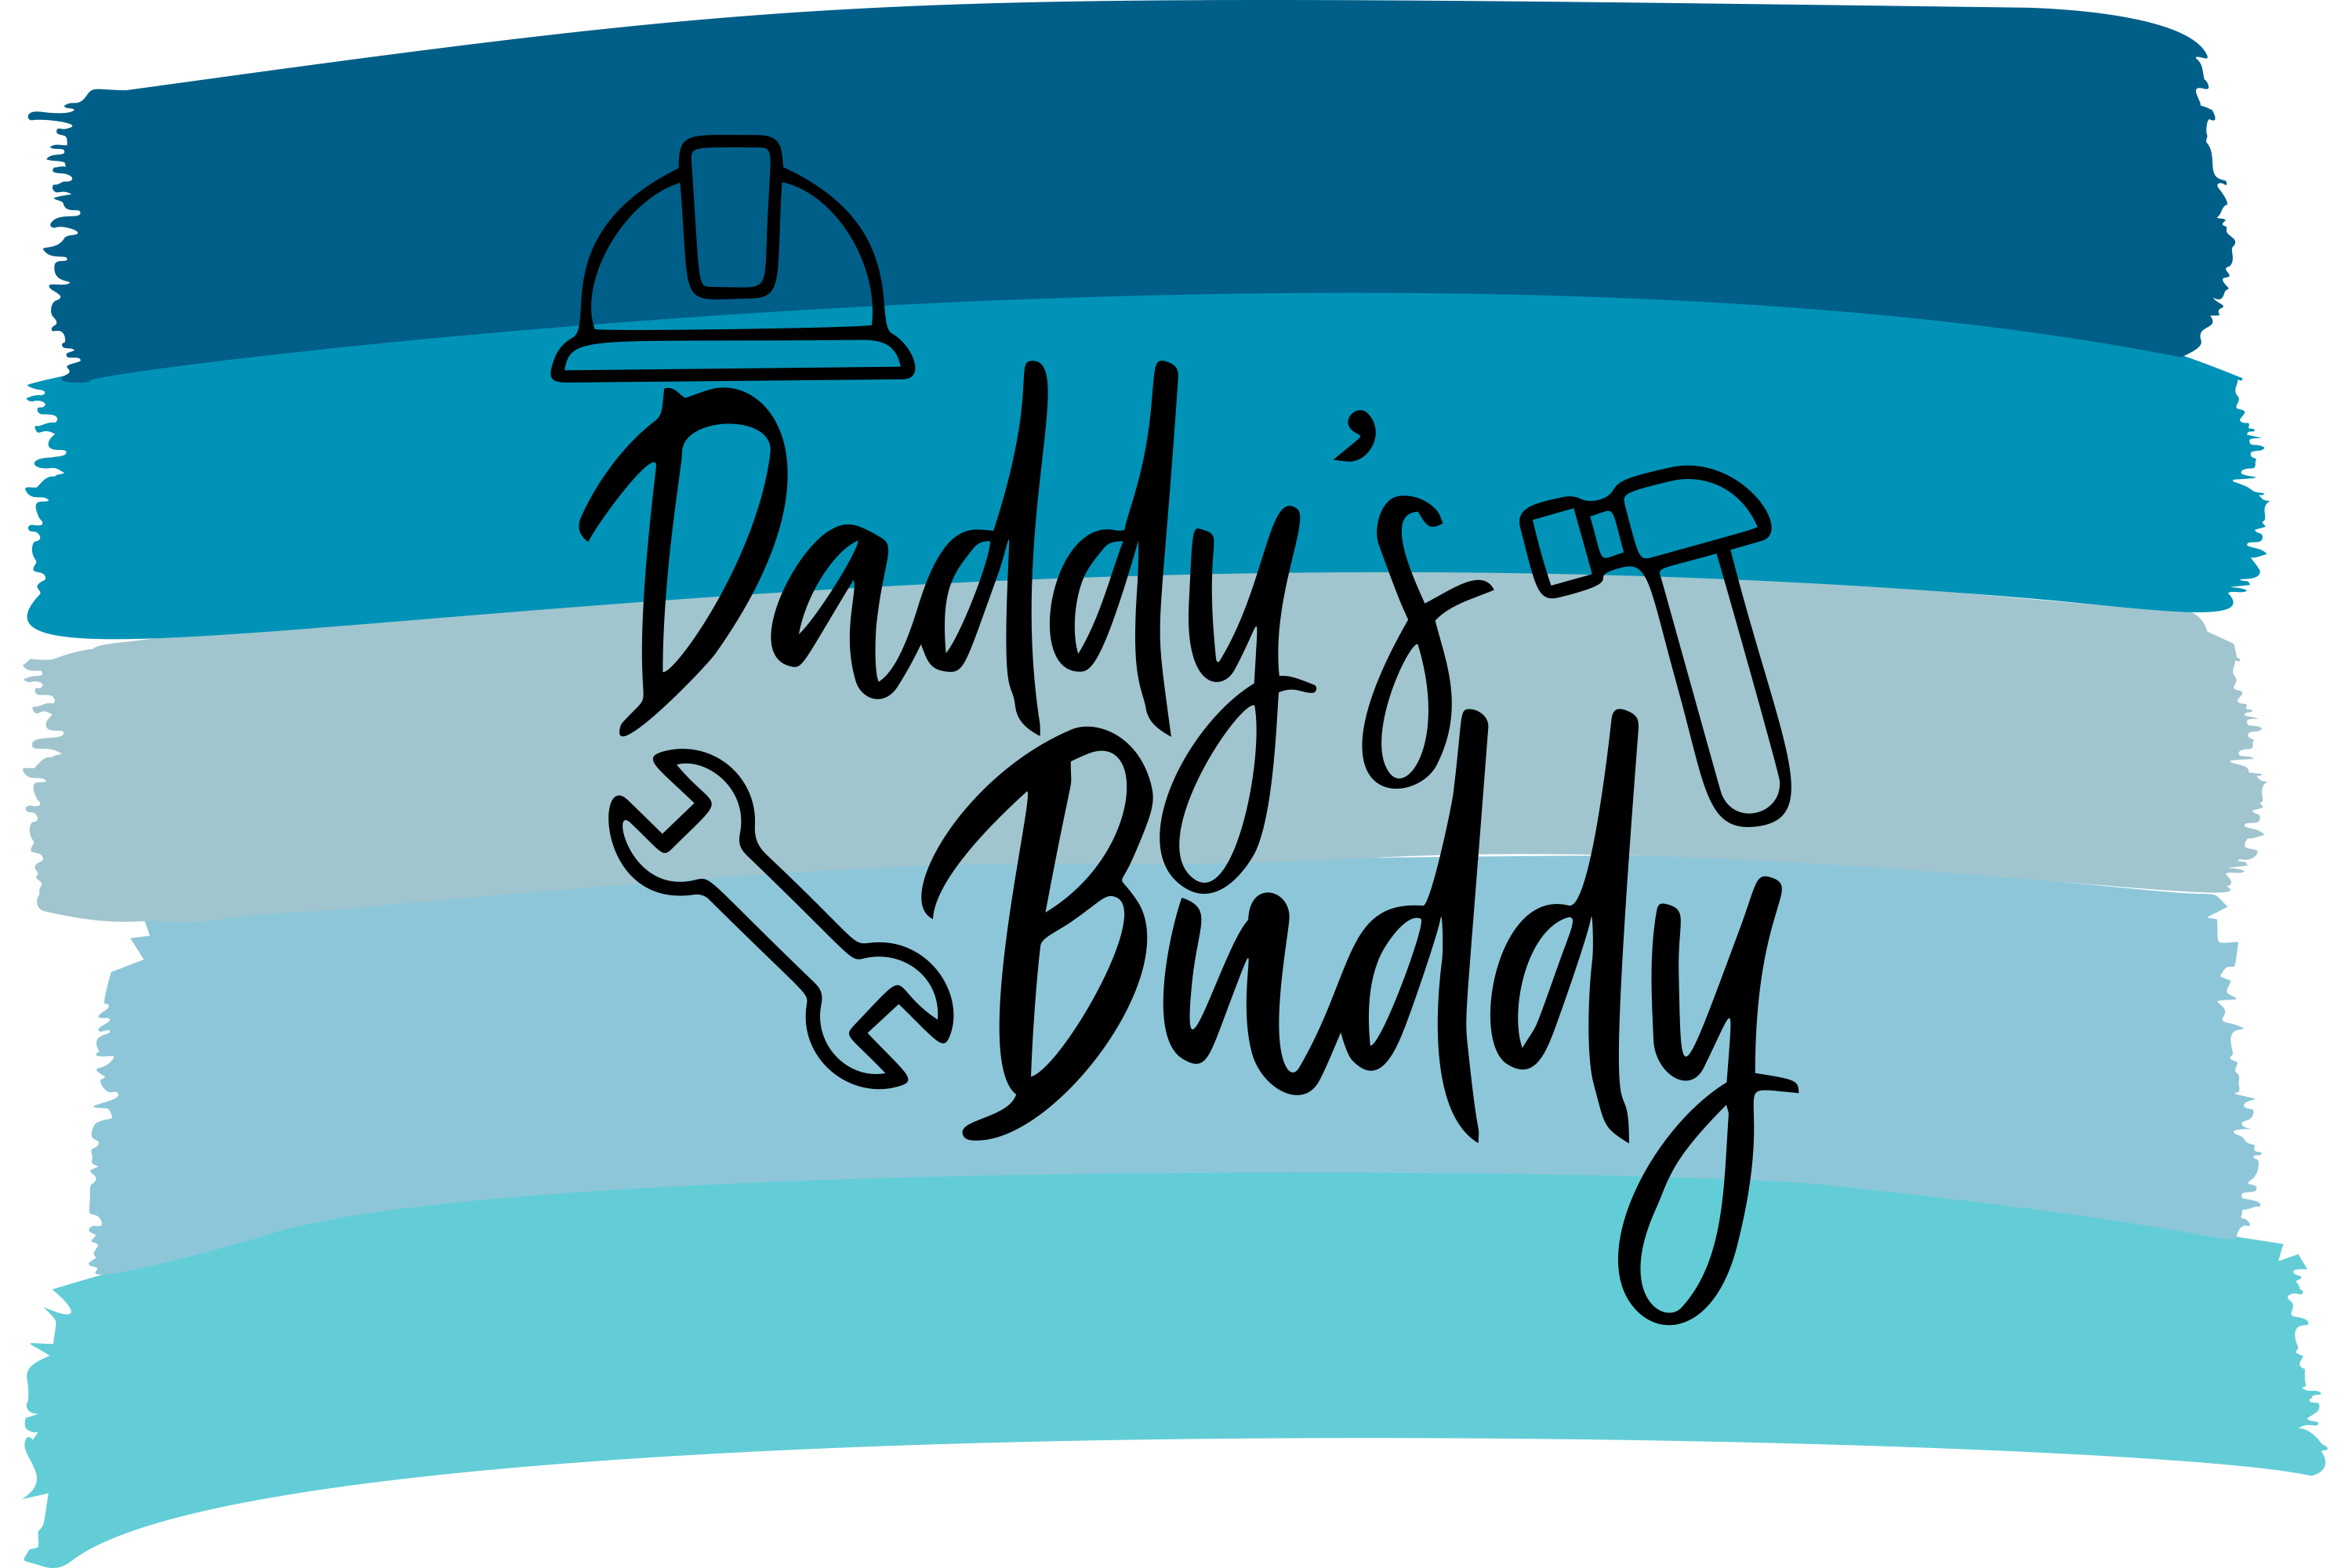 Download Free Daddy S Buddy Father S Day T Shirt Graphic By Am Digital Designs for Cricut Explore, Silhouette and other cutting machines.